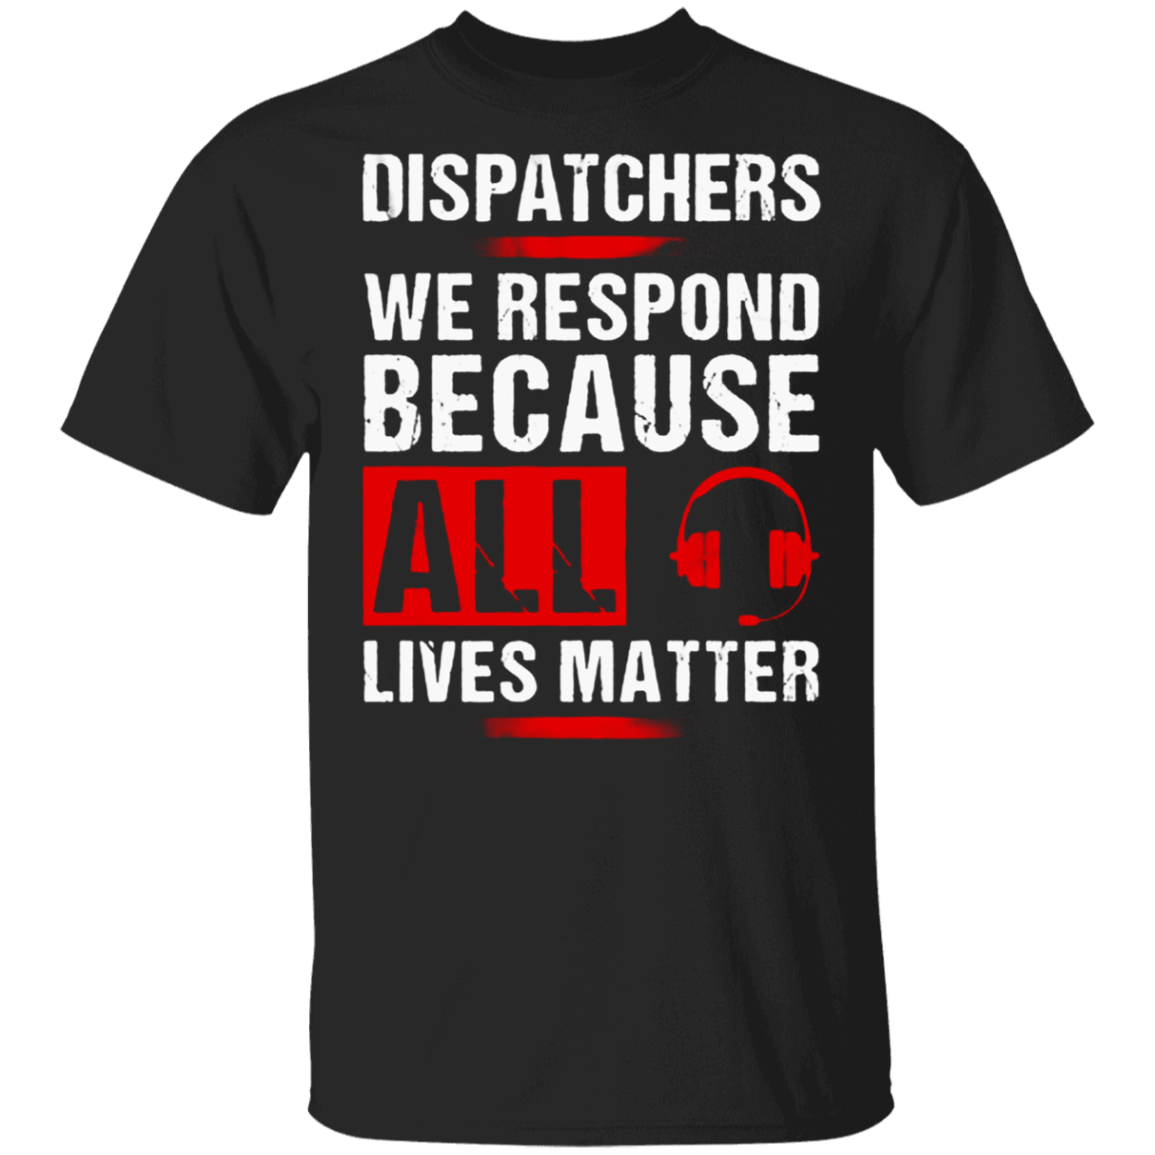 Dispatchers We Respond Because All Lives Matter T-Shirt No Justice No Peace Shirt